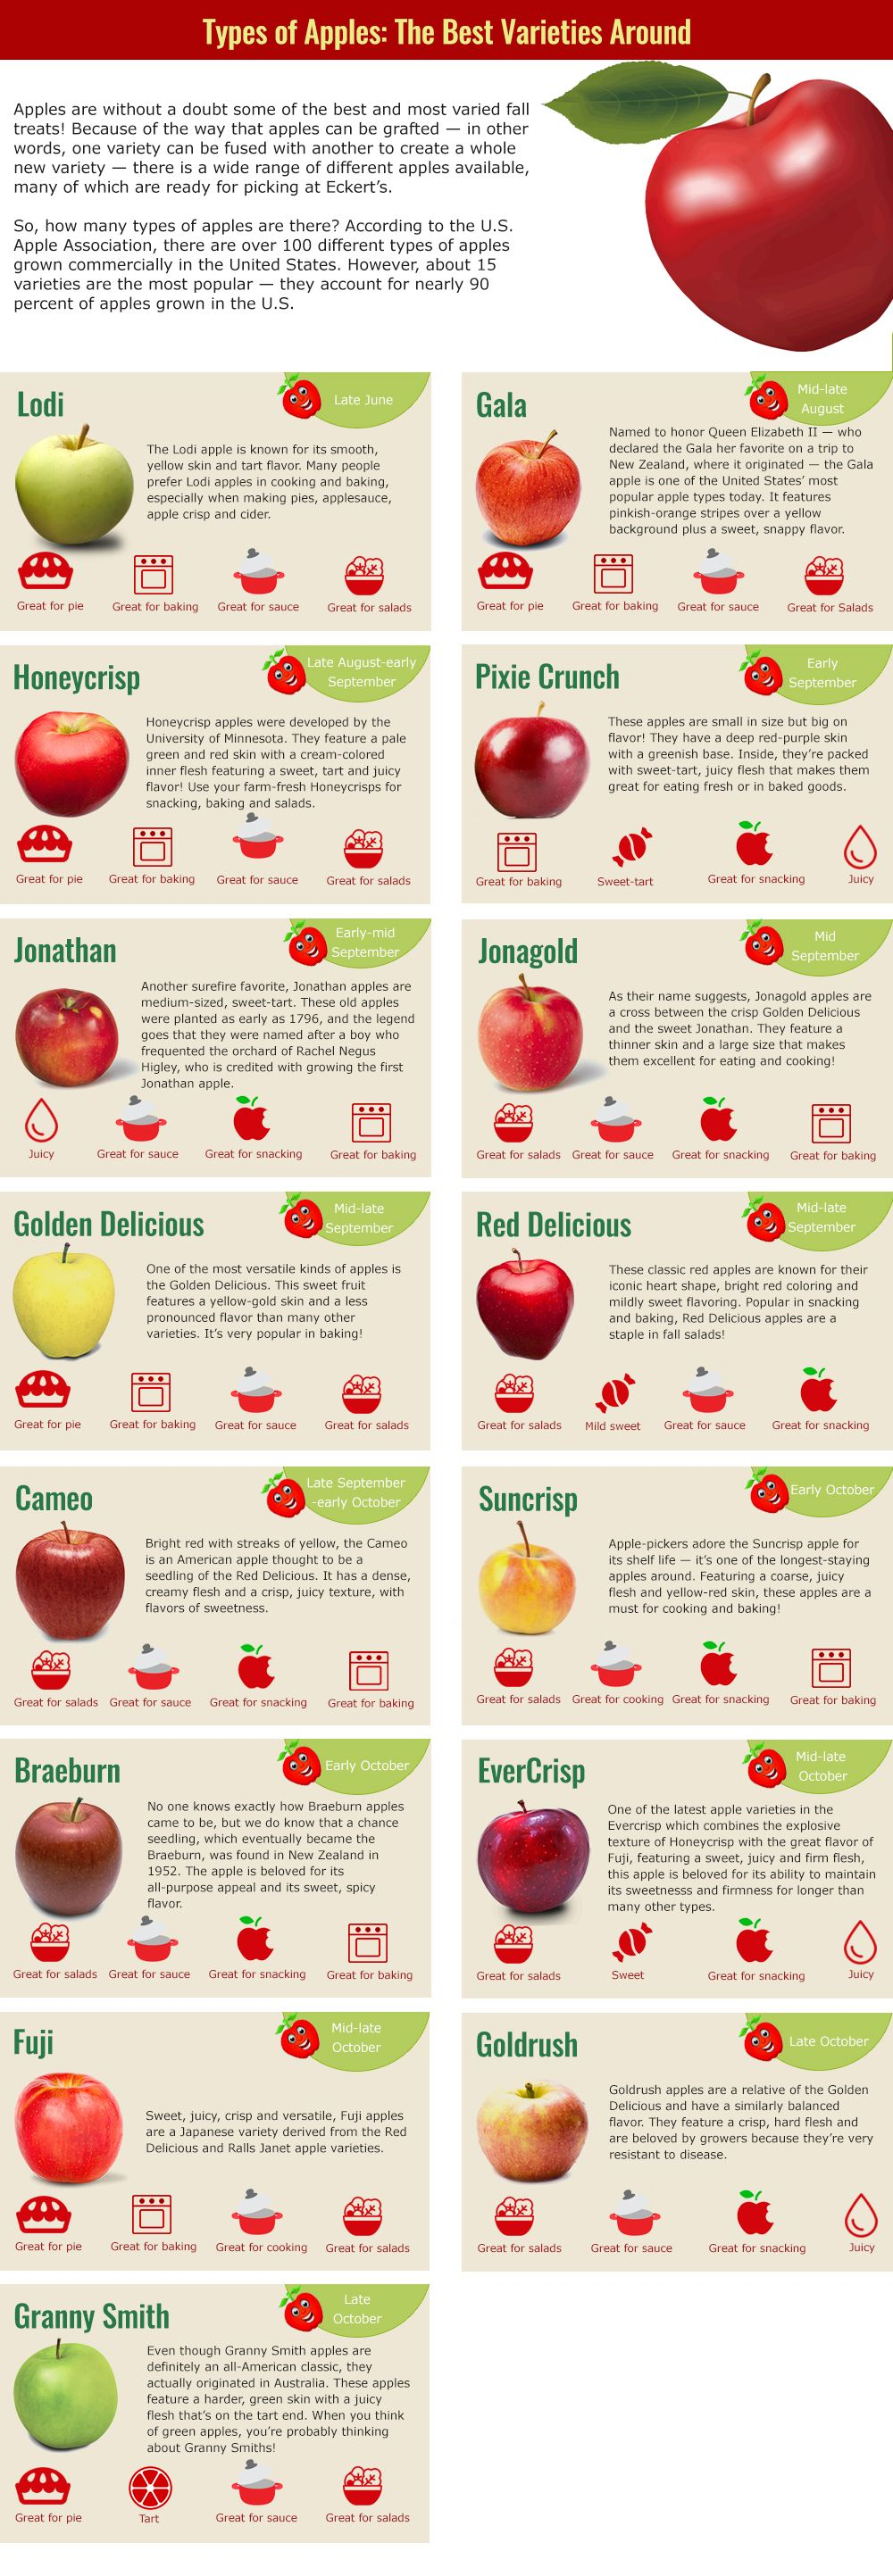 Types of Apples - Apple Varieties - Eckerts.com | Apple ...